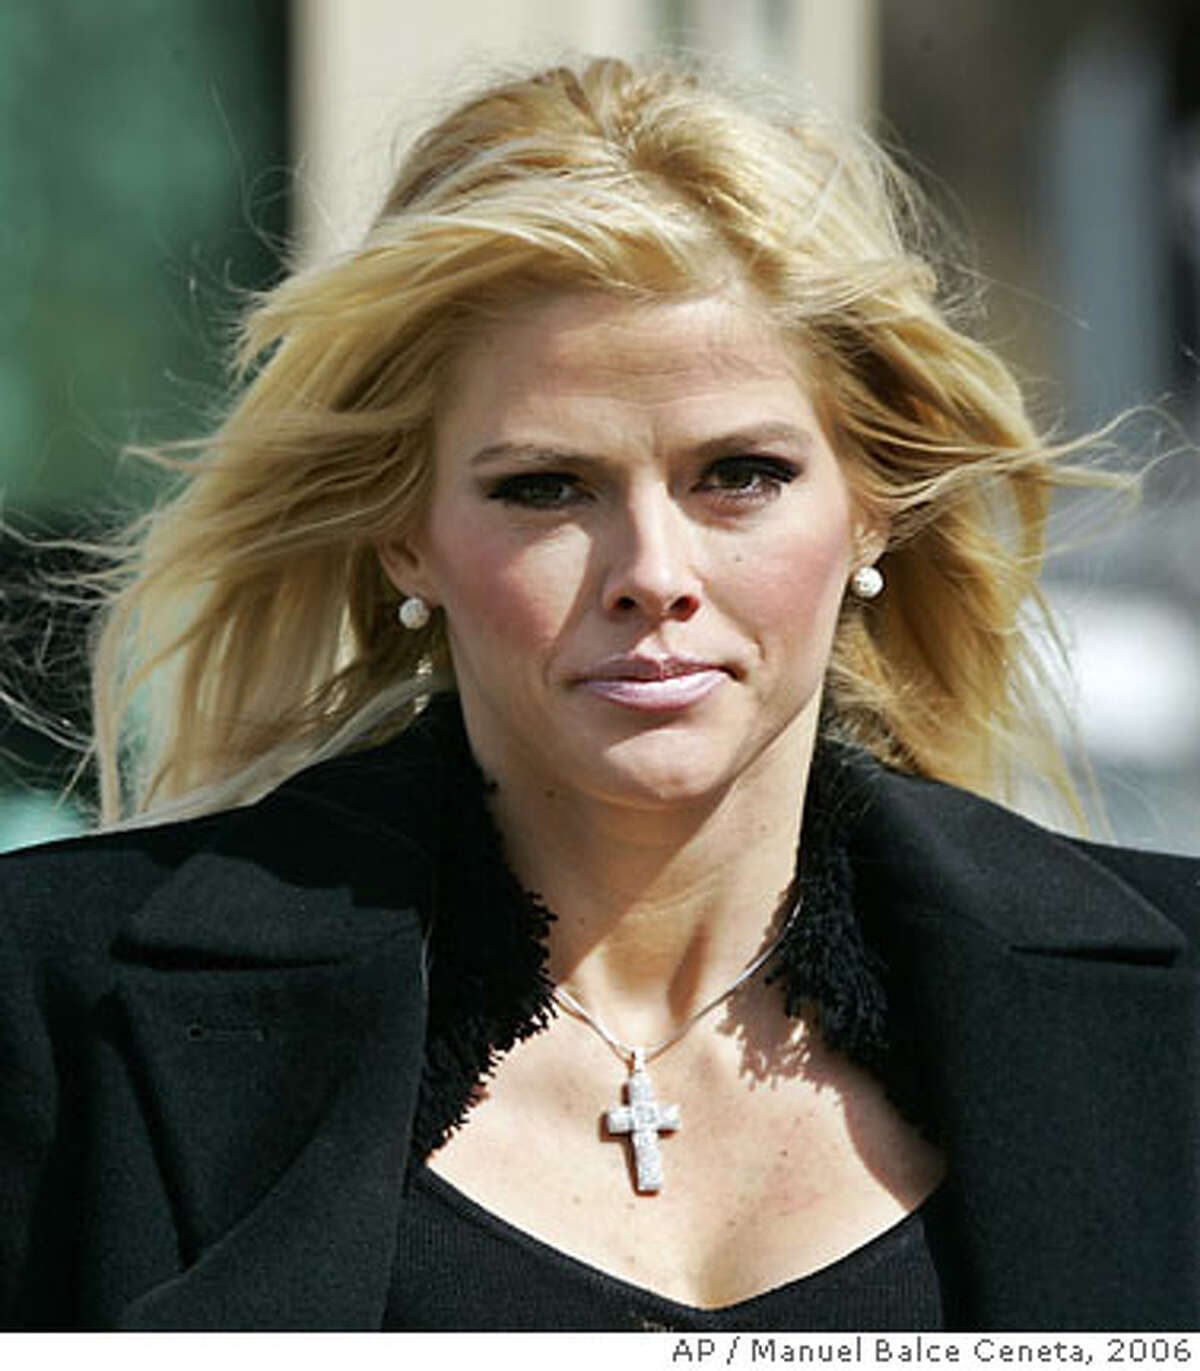 ** FILE ** Anna Nicole Smith, leaves the U.S. Supreme Court, in this Feb. 28, 2006, file photo in Washington. Smith was hospitalized in Hollywood, Fla., Thursday Feb. 8, 2007, after collapsing.. (AP Photo/Manuel Balce Ceneta)